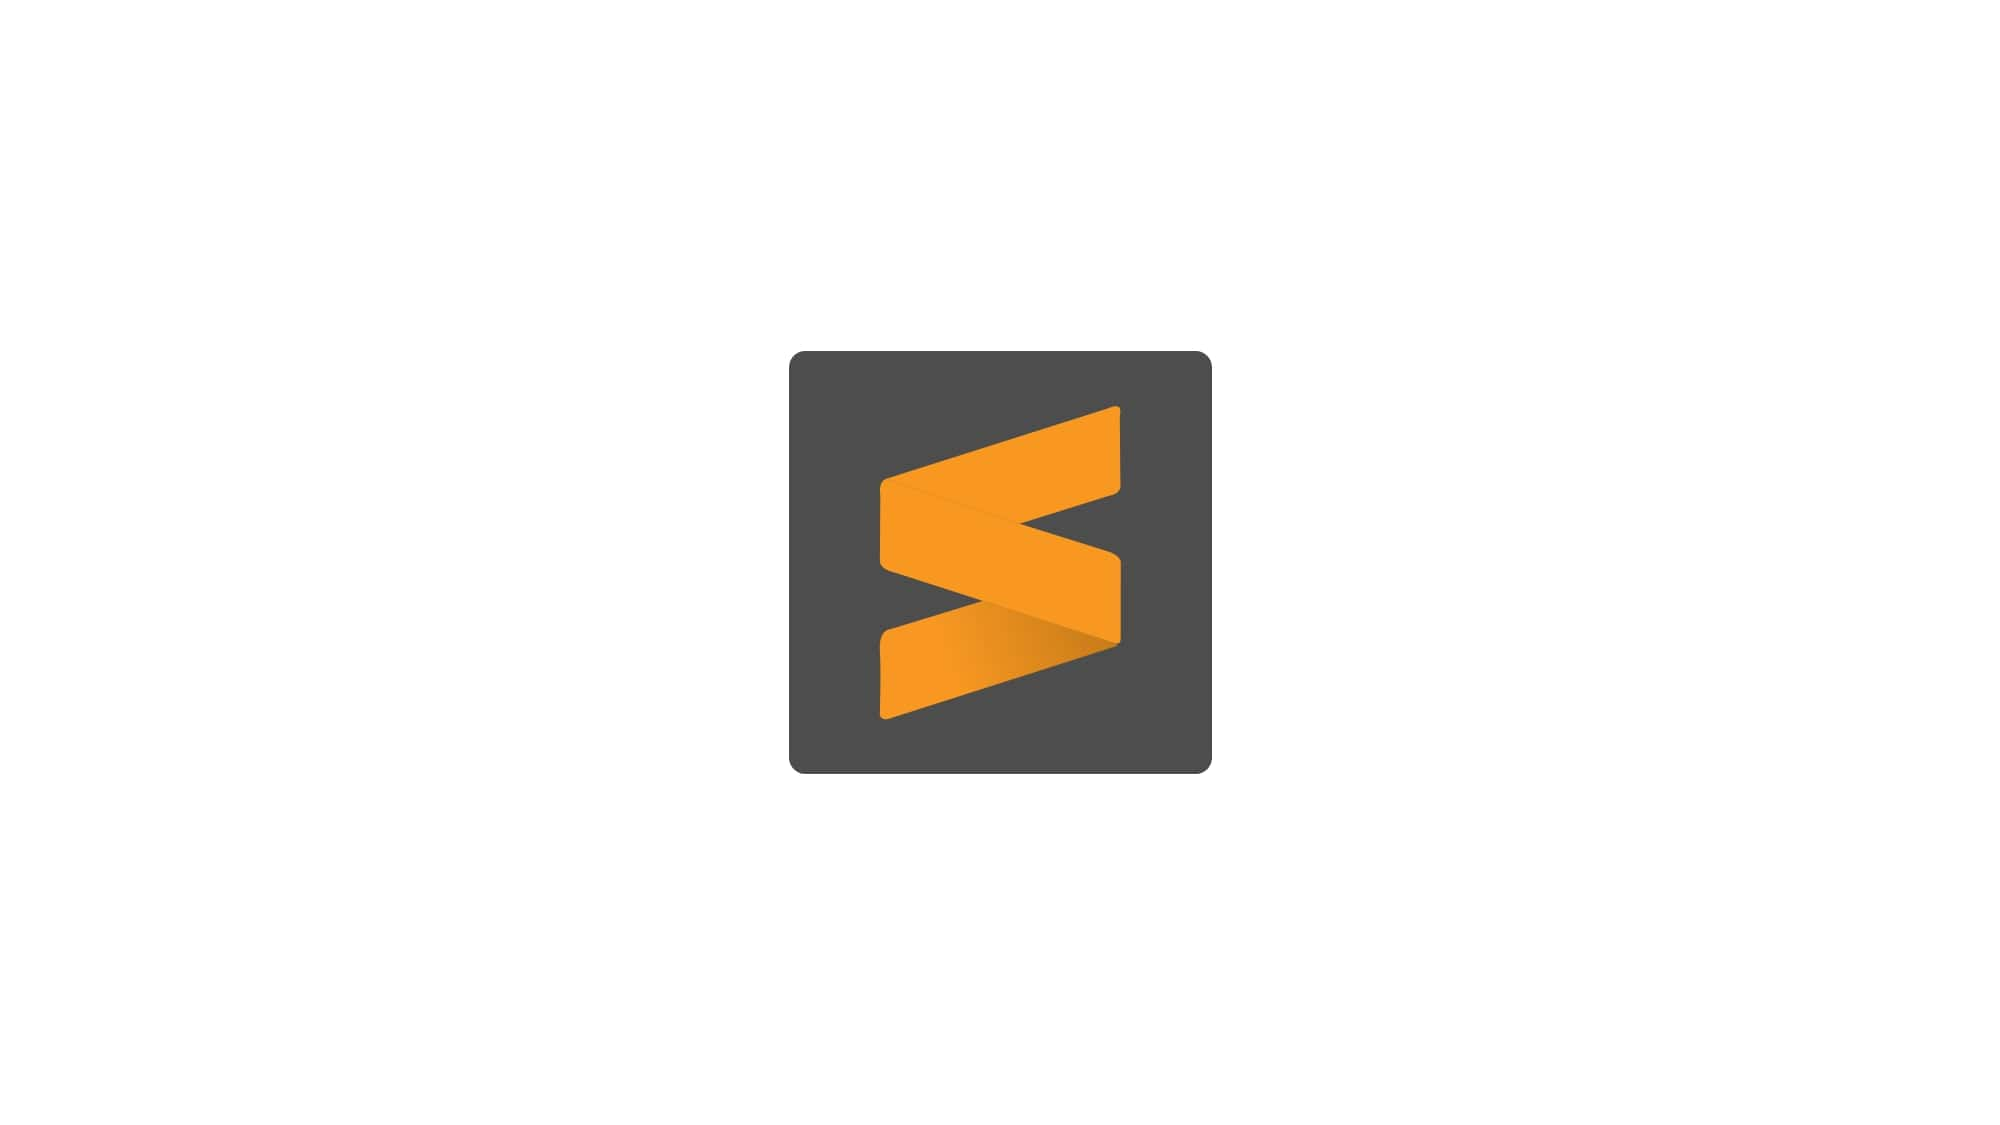 Come installare Sublime Text 3 su Ubuntu 18.04 LTS